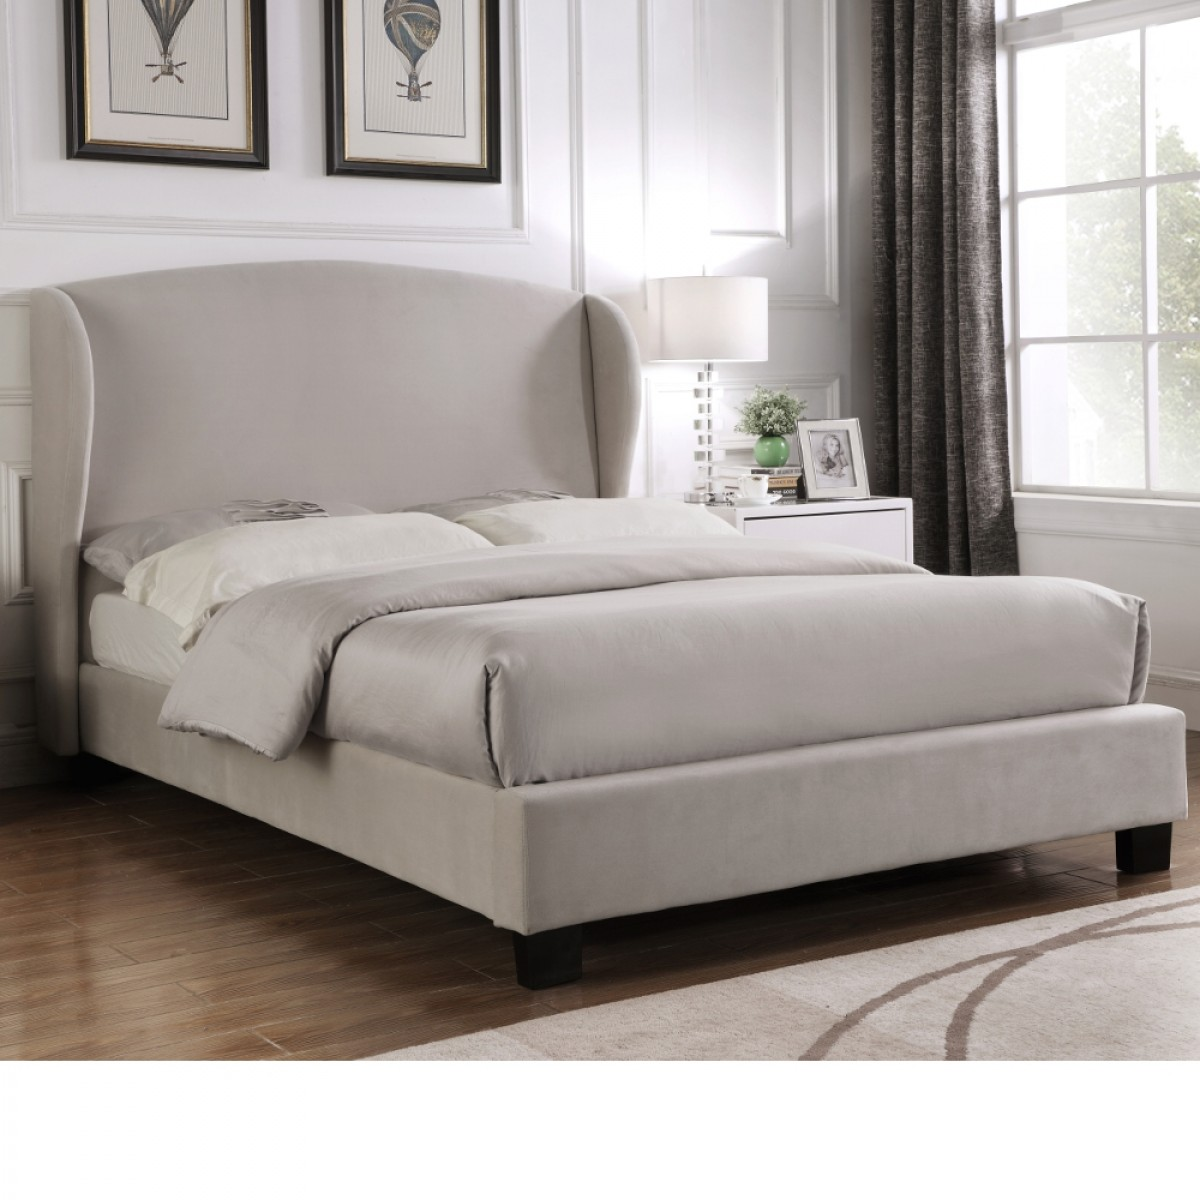 Blenheim Light Grey Velvet Fabric Winged Bed